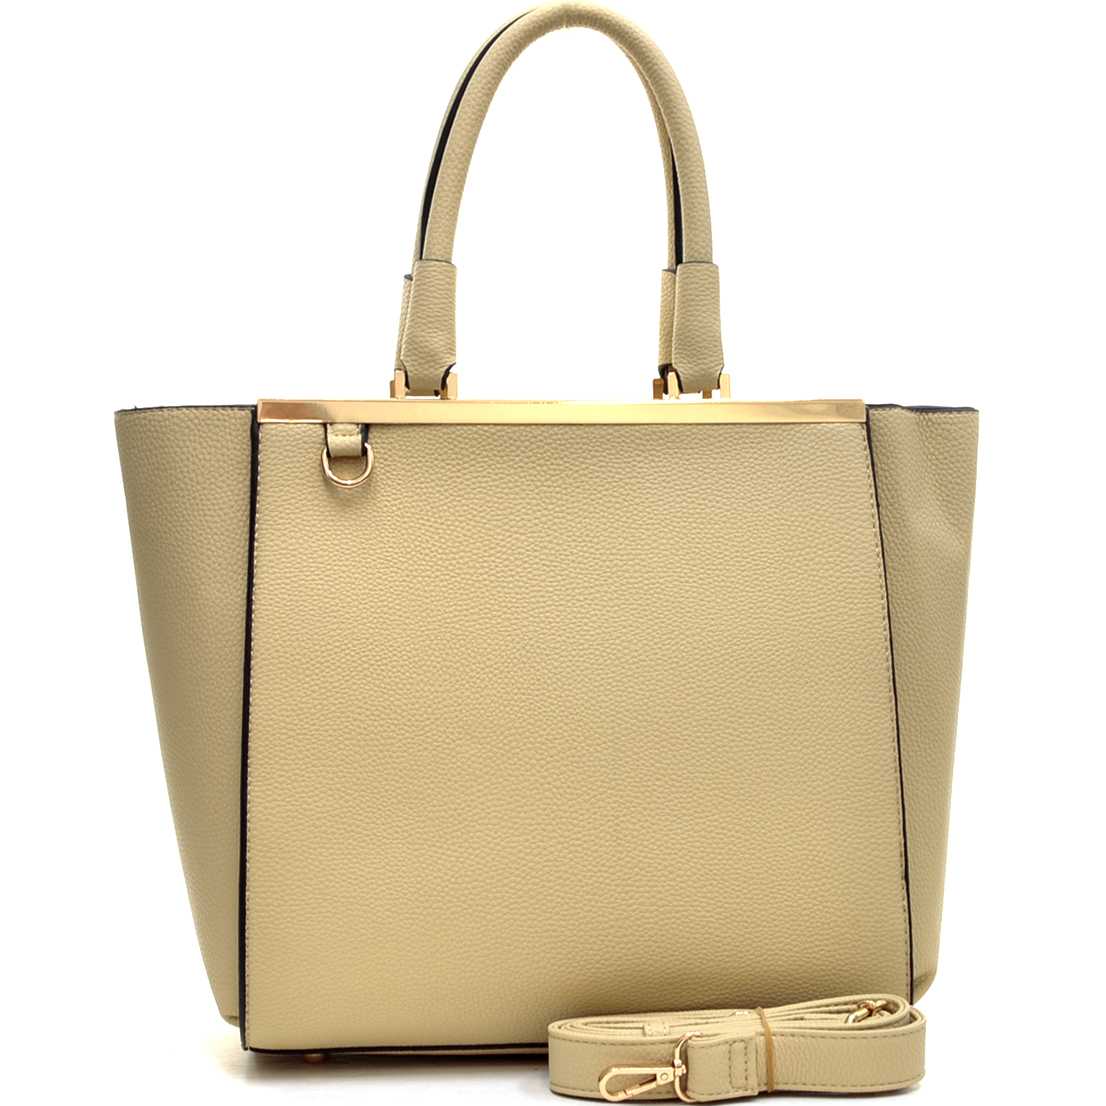 Buffalo Faux Leather Gold-Tone Satchel with Shoulder Strap